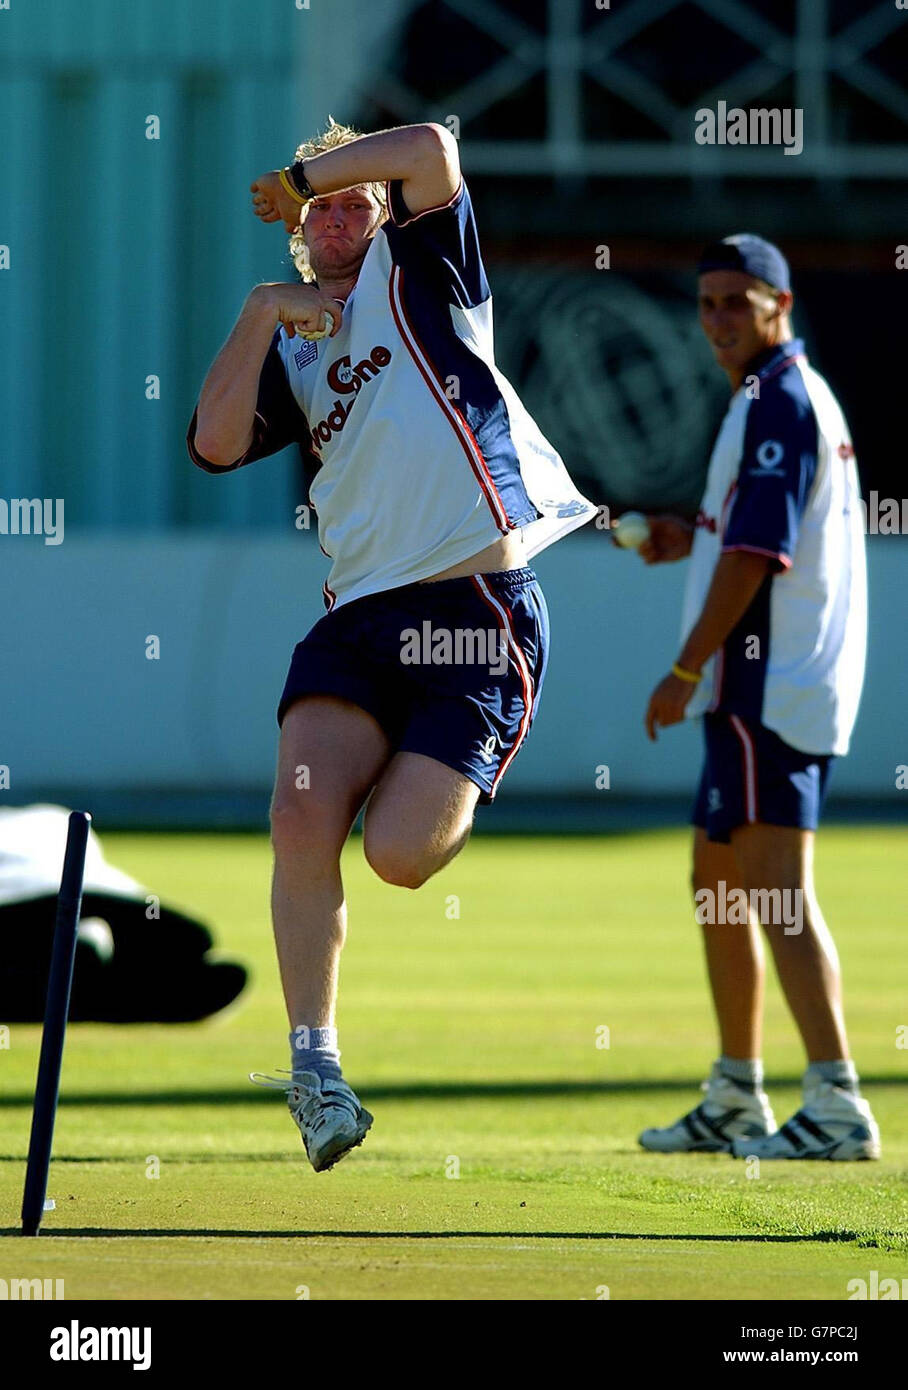 England net session - De Beers Oval - Stock Image